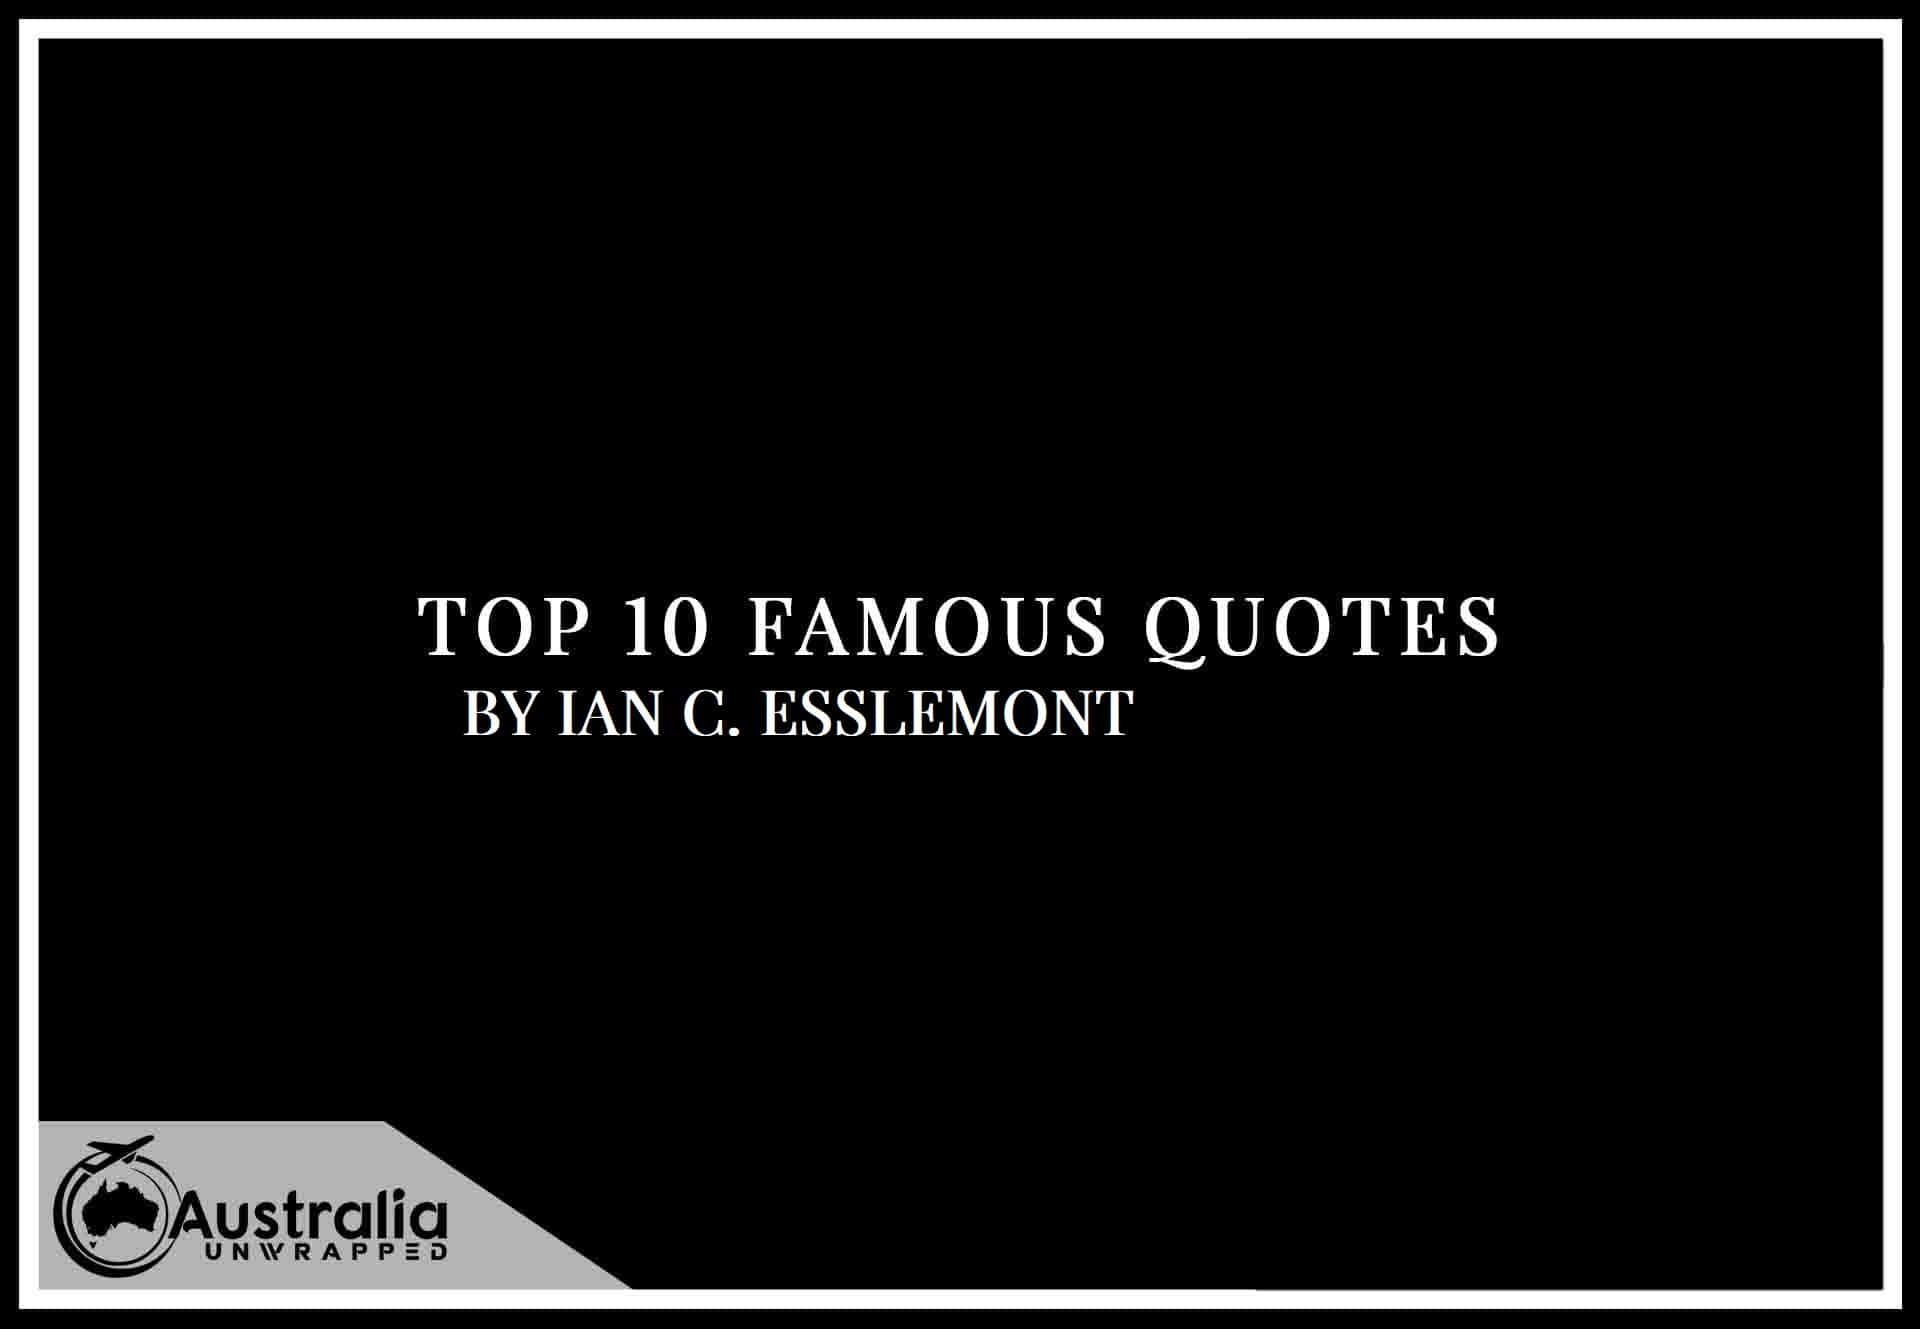 Top 10 Famous Quotes by Author Ian C. Esslemont